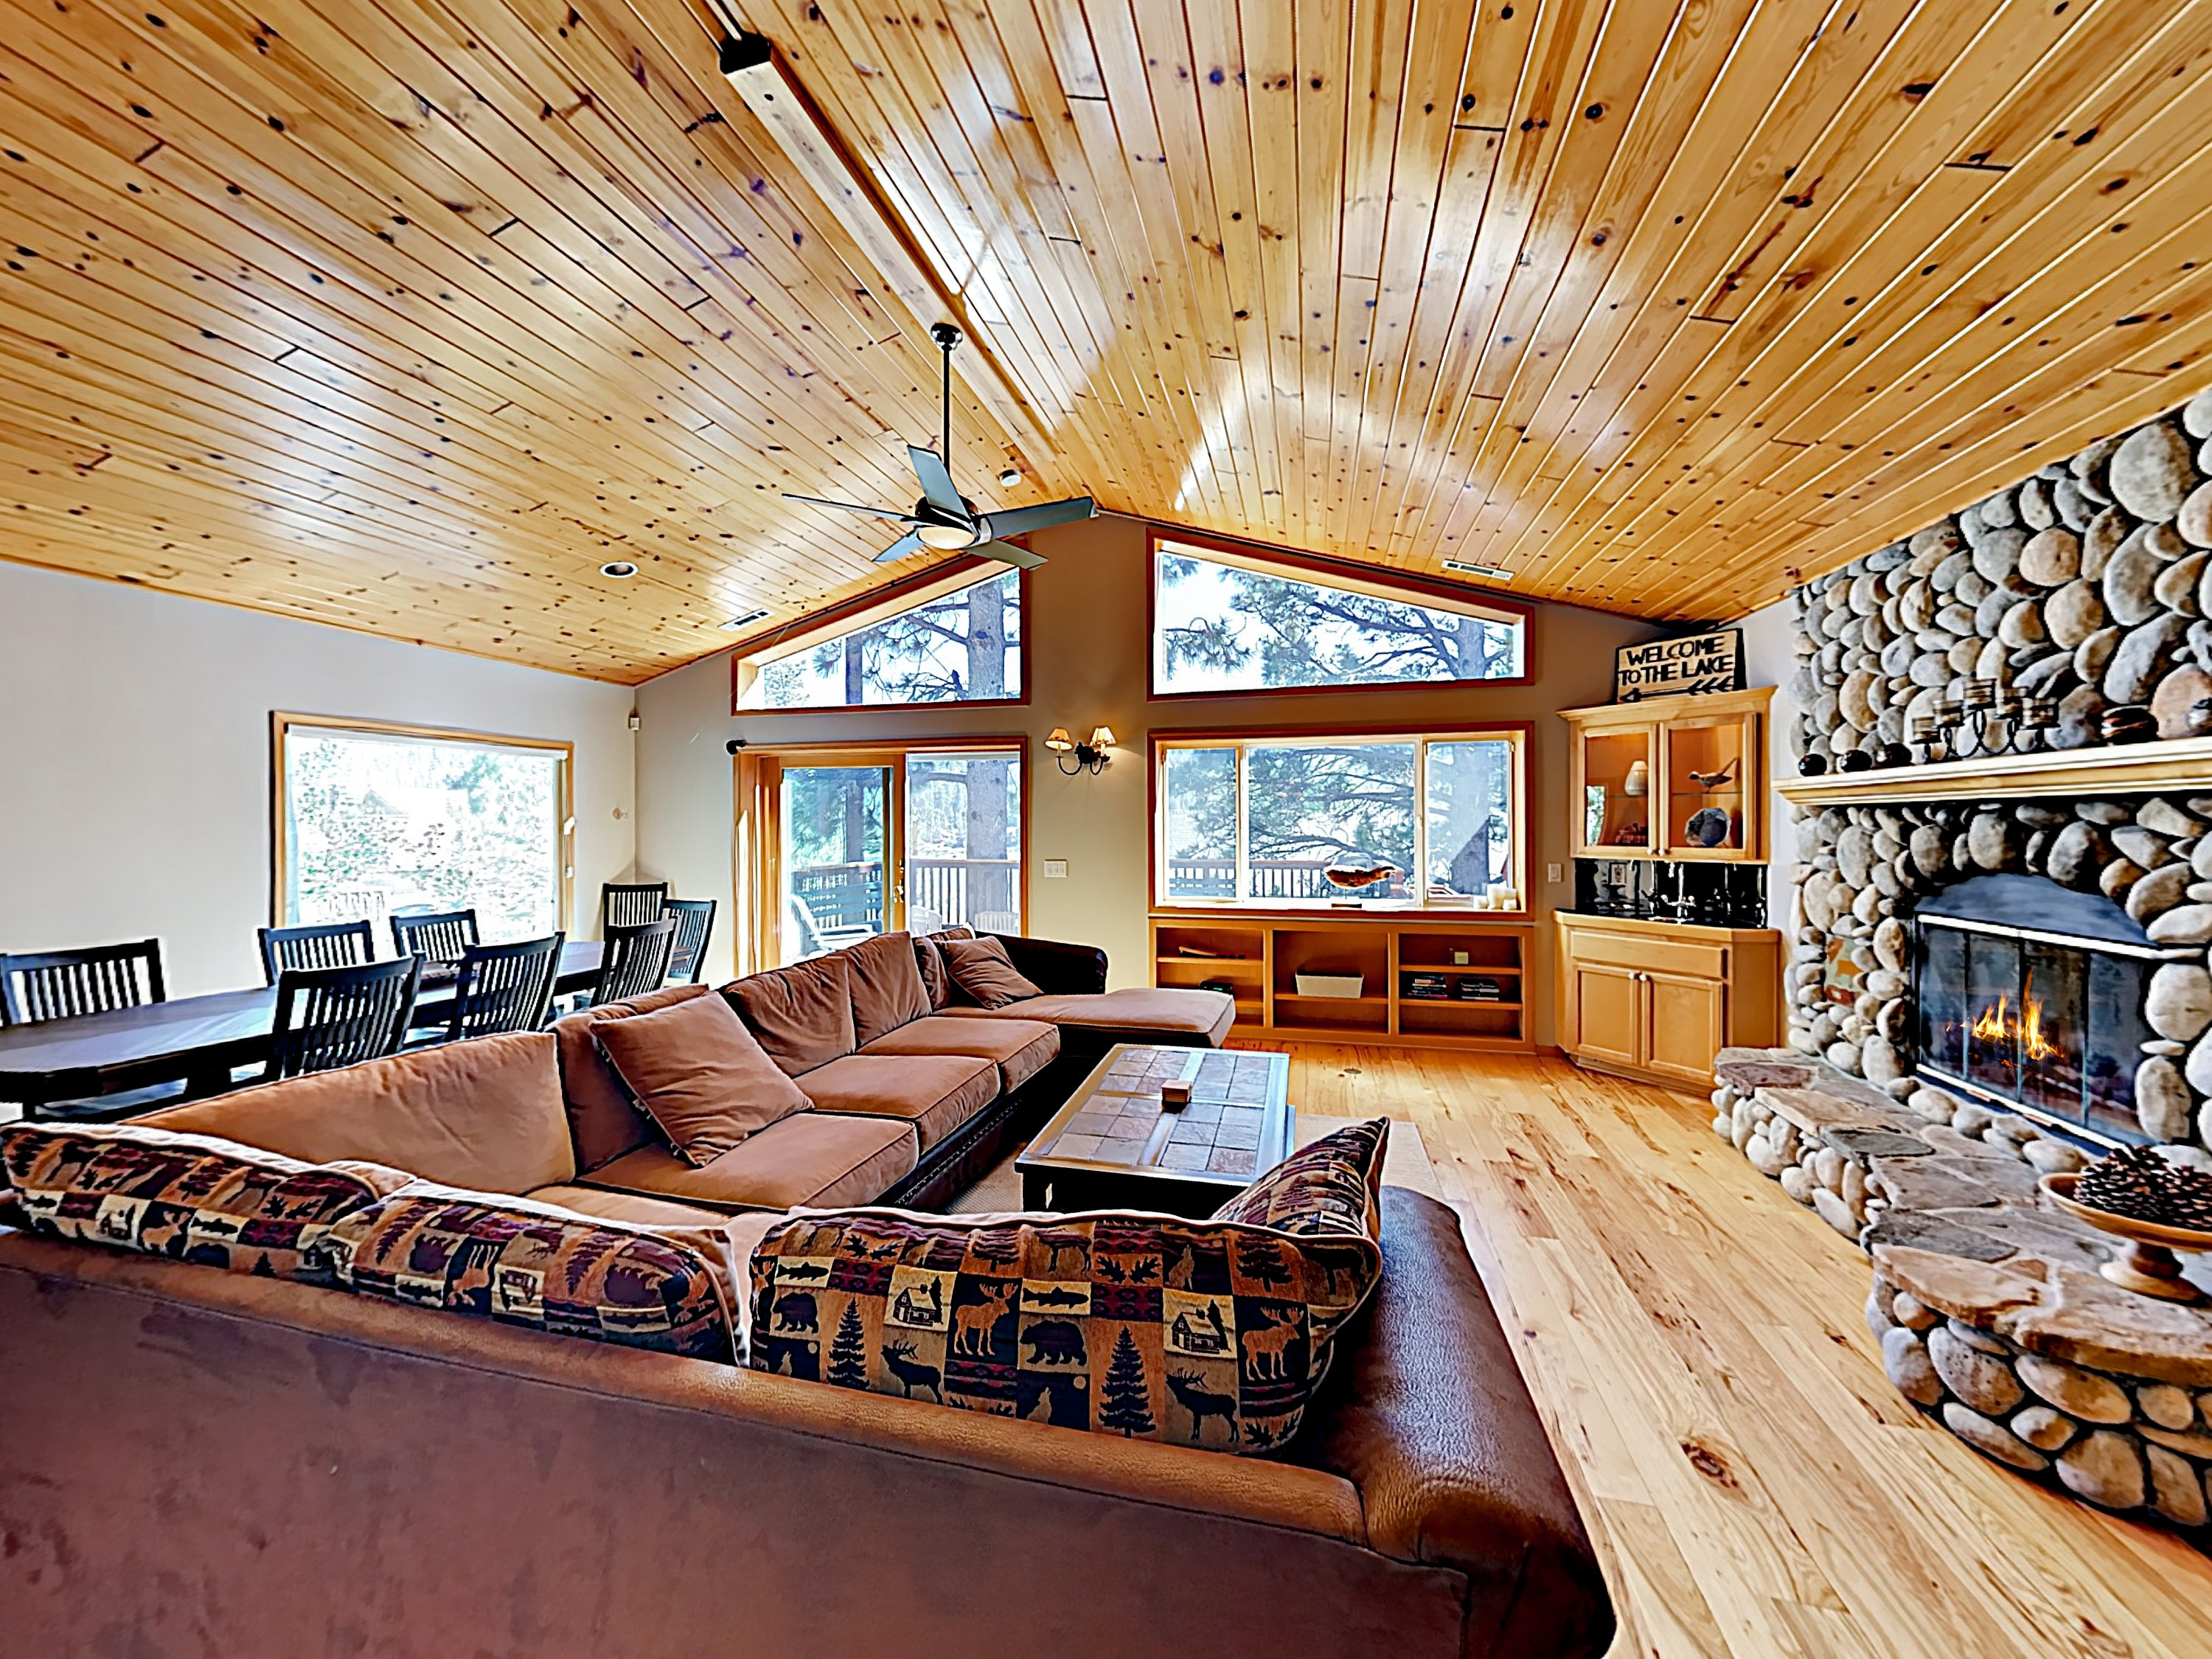 Welcome to Big Bear! Sunlight fills the Great Room, setting off glossy pecan floors and vaulted ceilings.